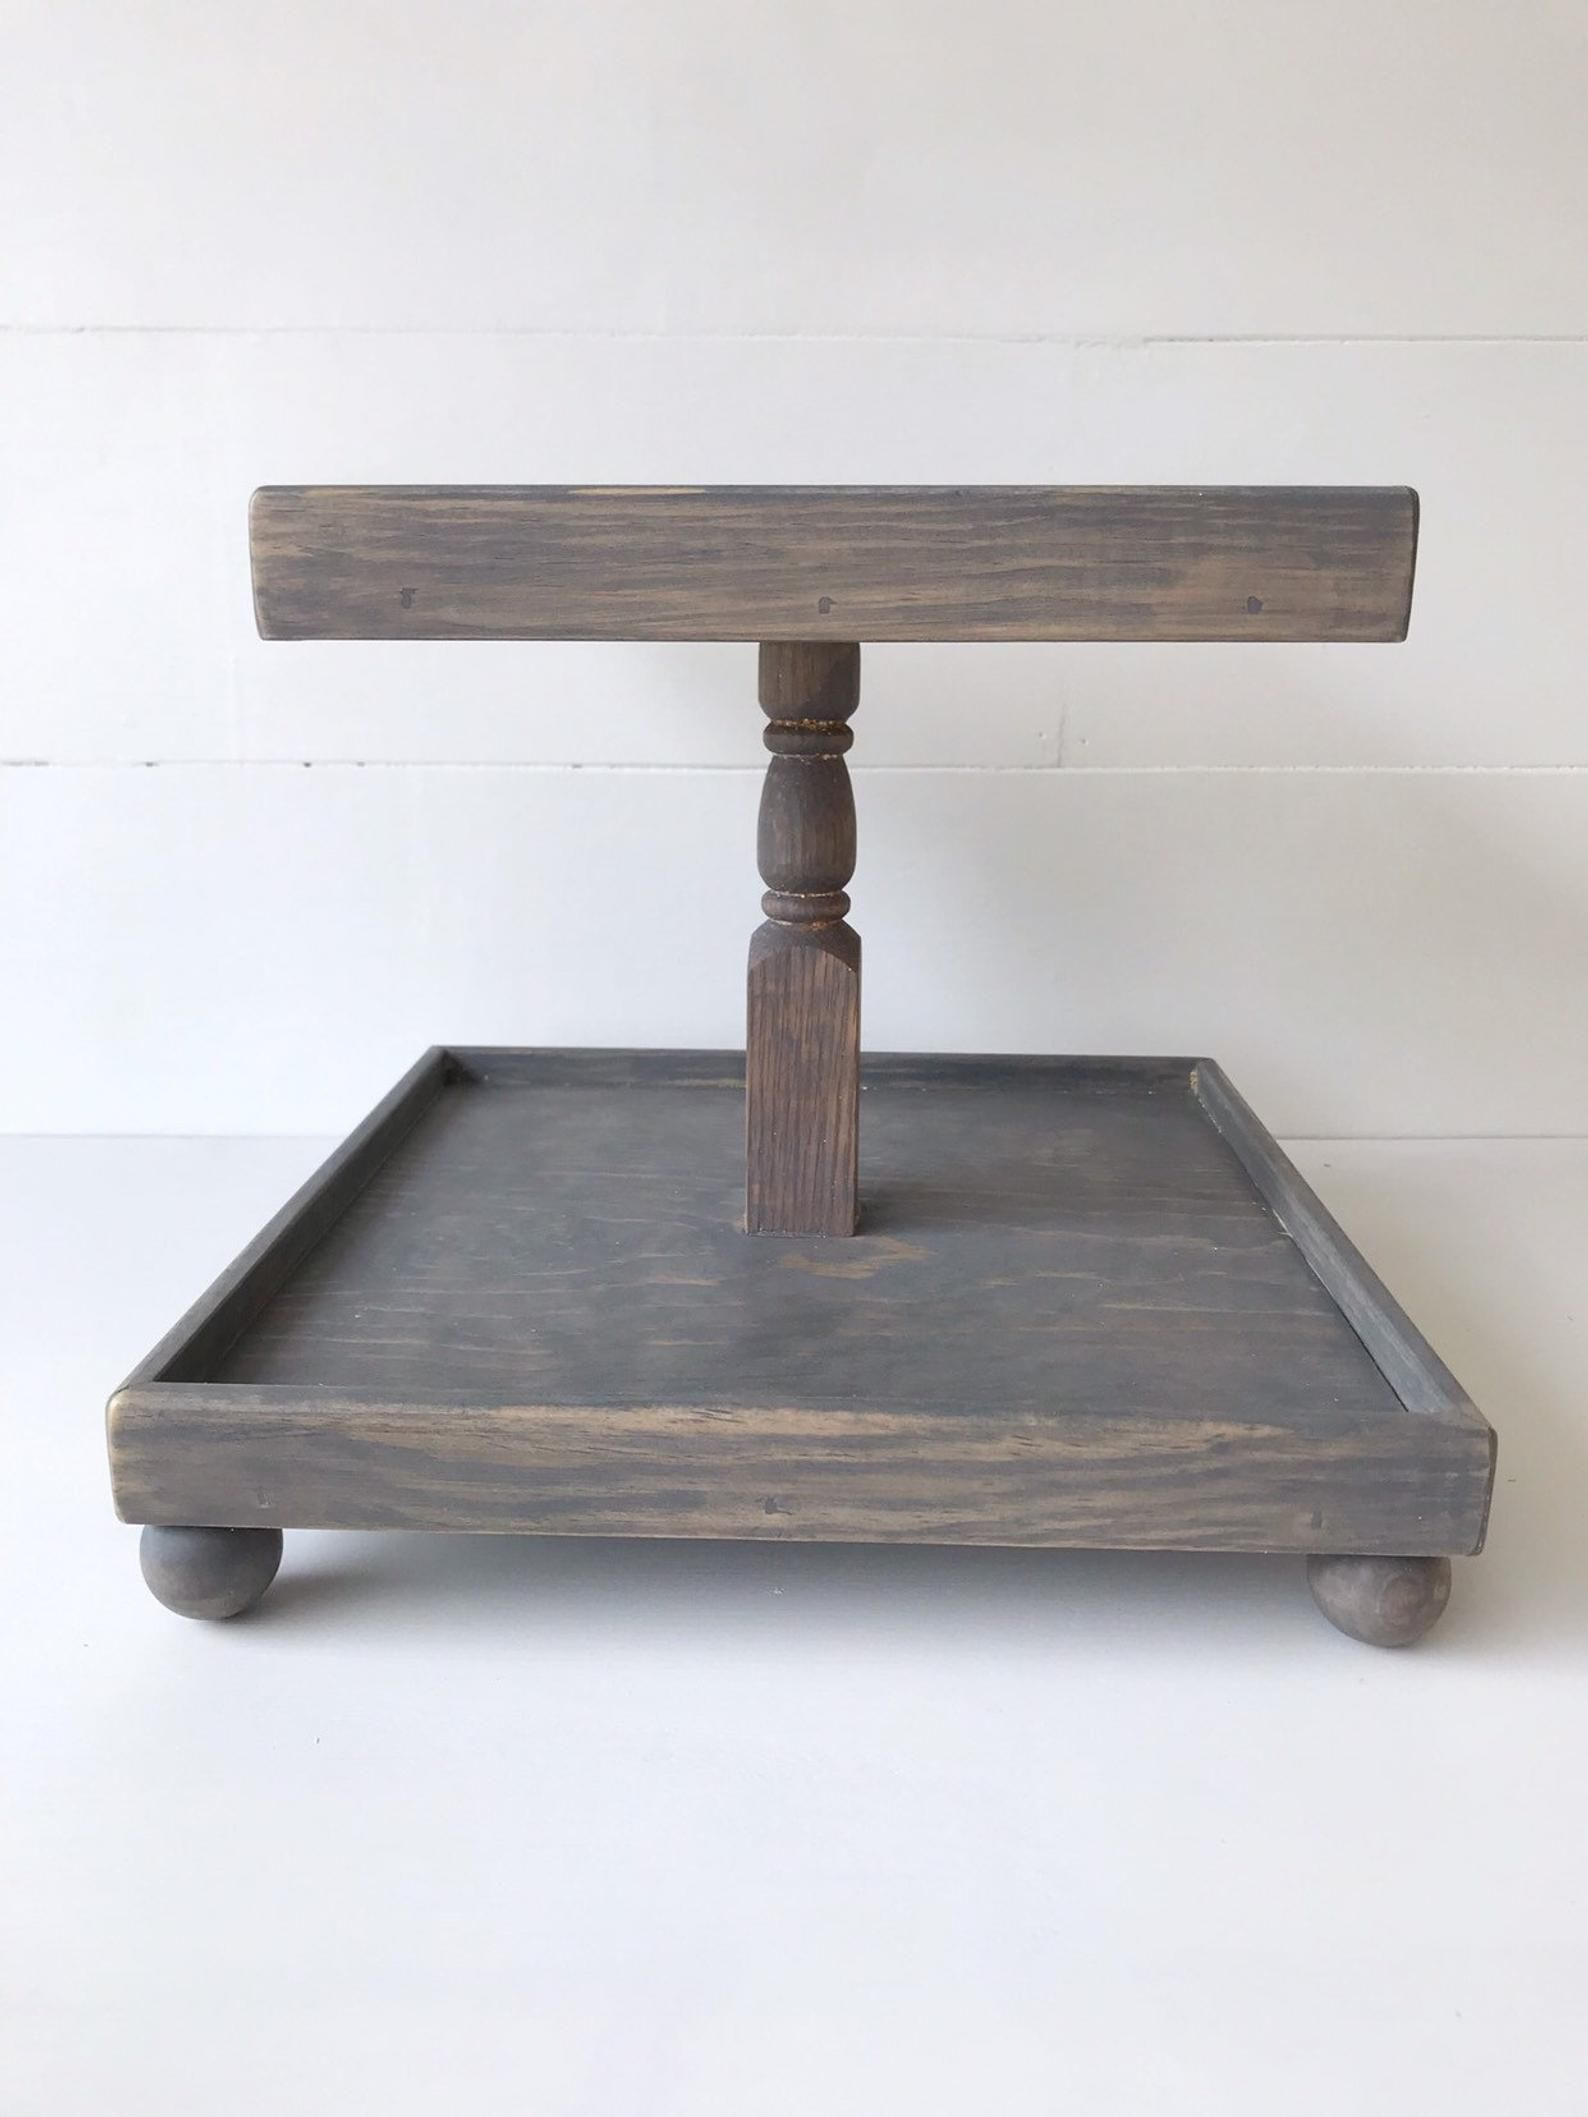 Pin By Tahere Ghorbani On طروف چوبی In 2020 Tiered Tray Tiered Stand Wooden